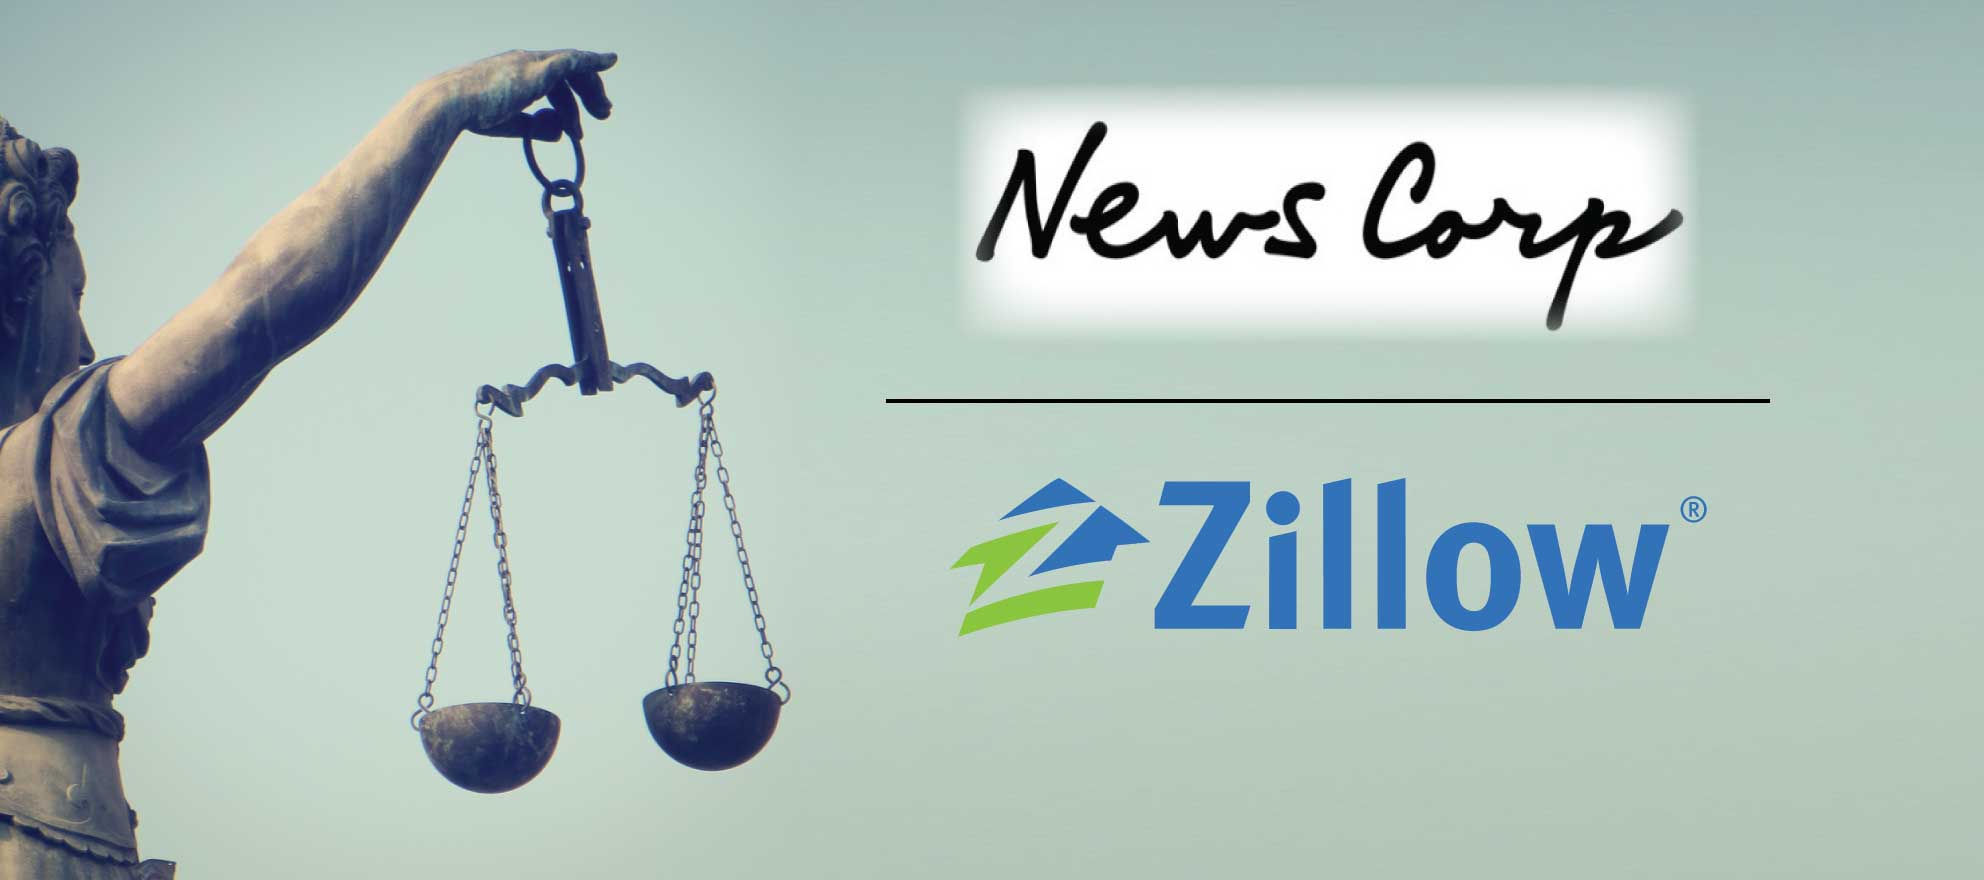 Lawsuits shed light on roots of Zillow-Trulia-News Corp. listings battle